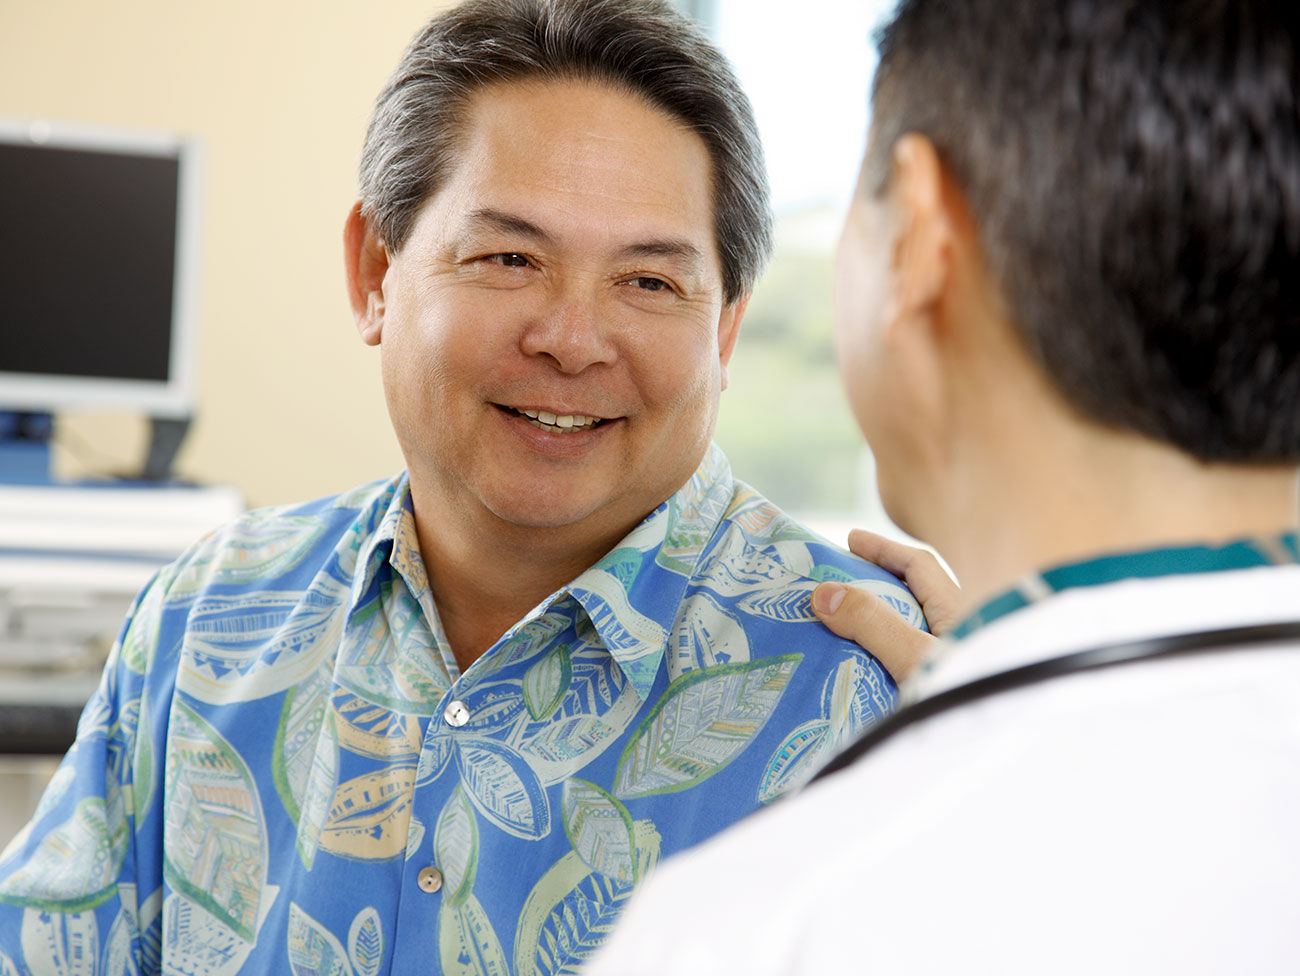 Kaiser Permanente Hawaii earns award from AHA